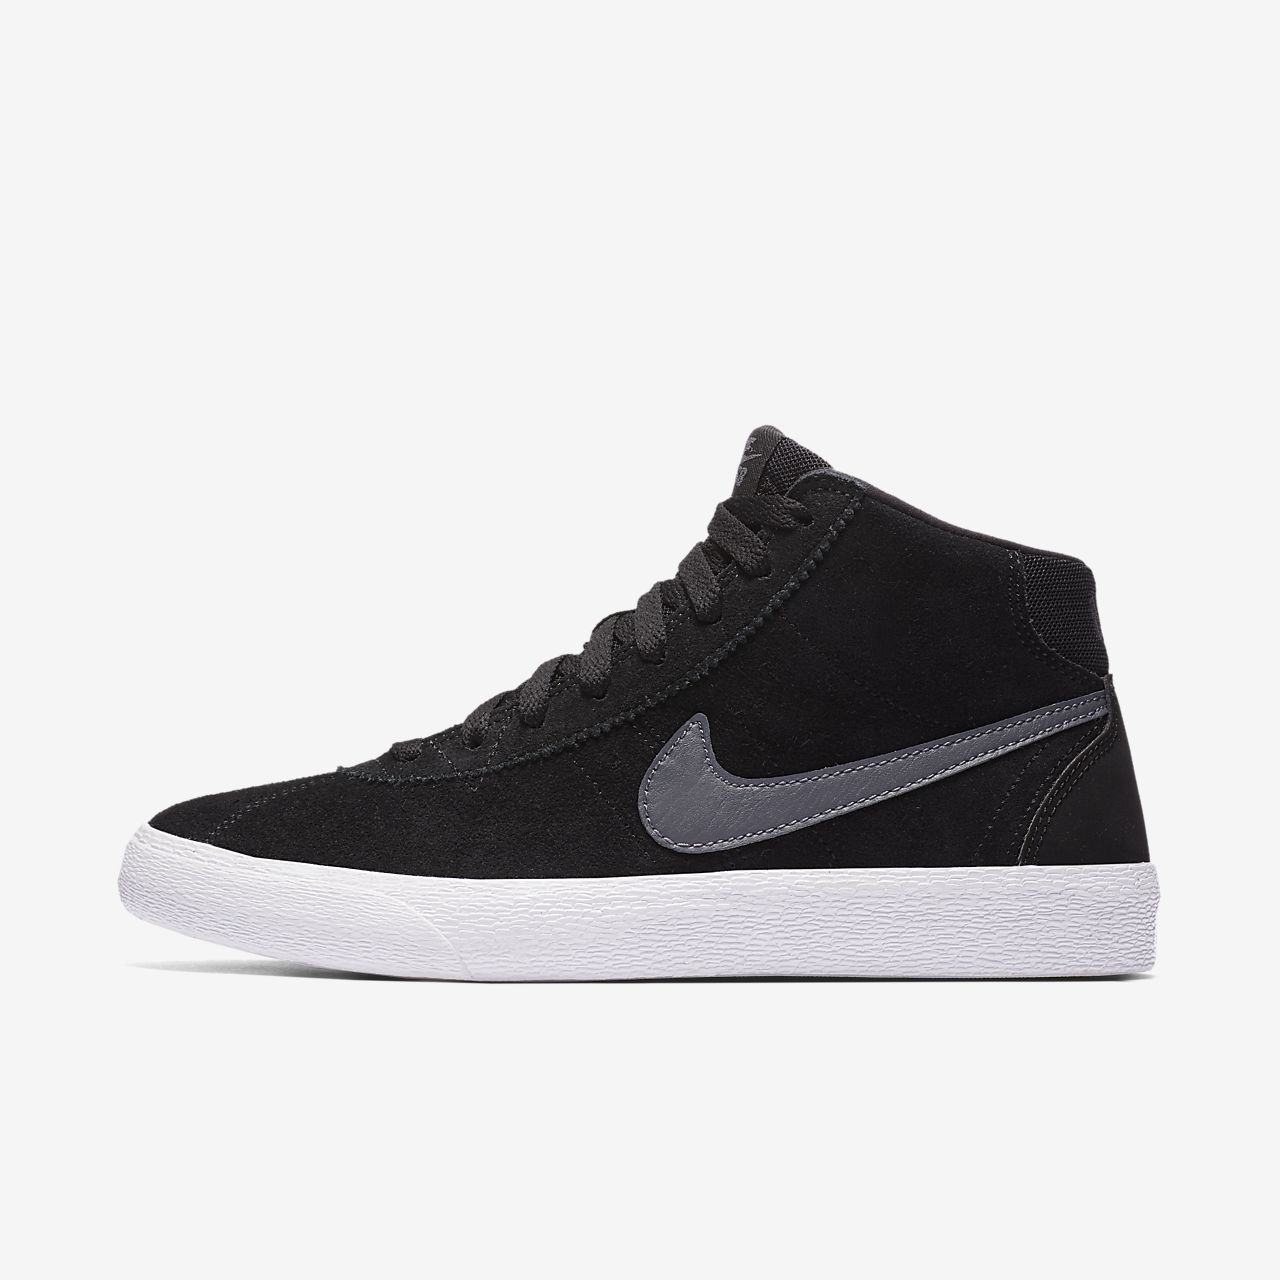 Sneakers nike black and white